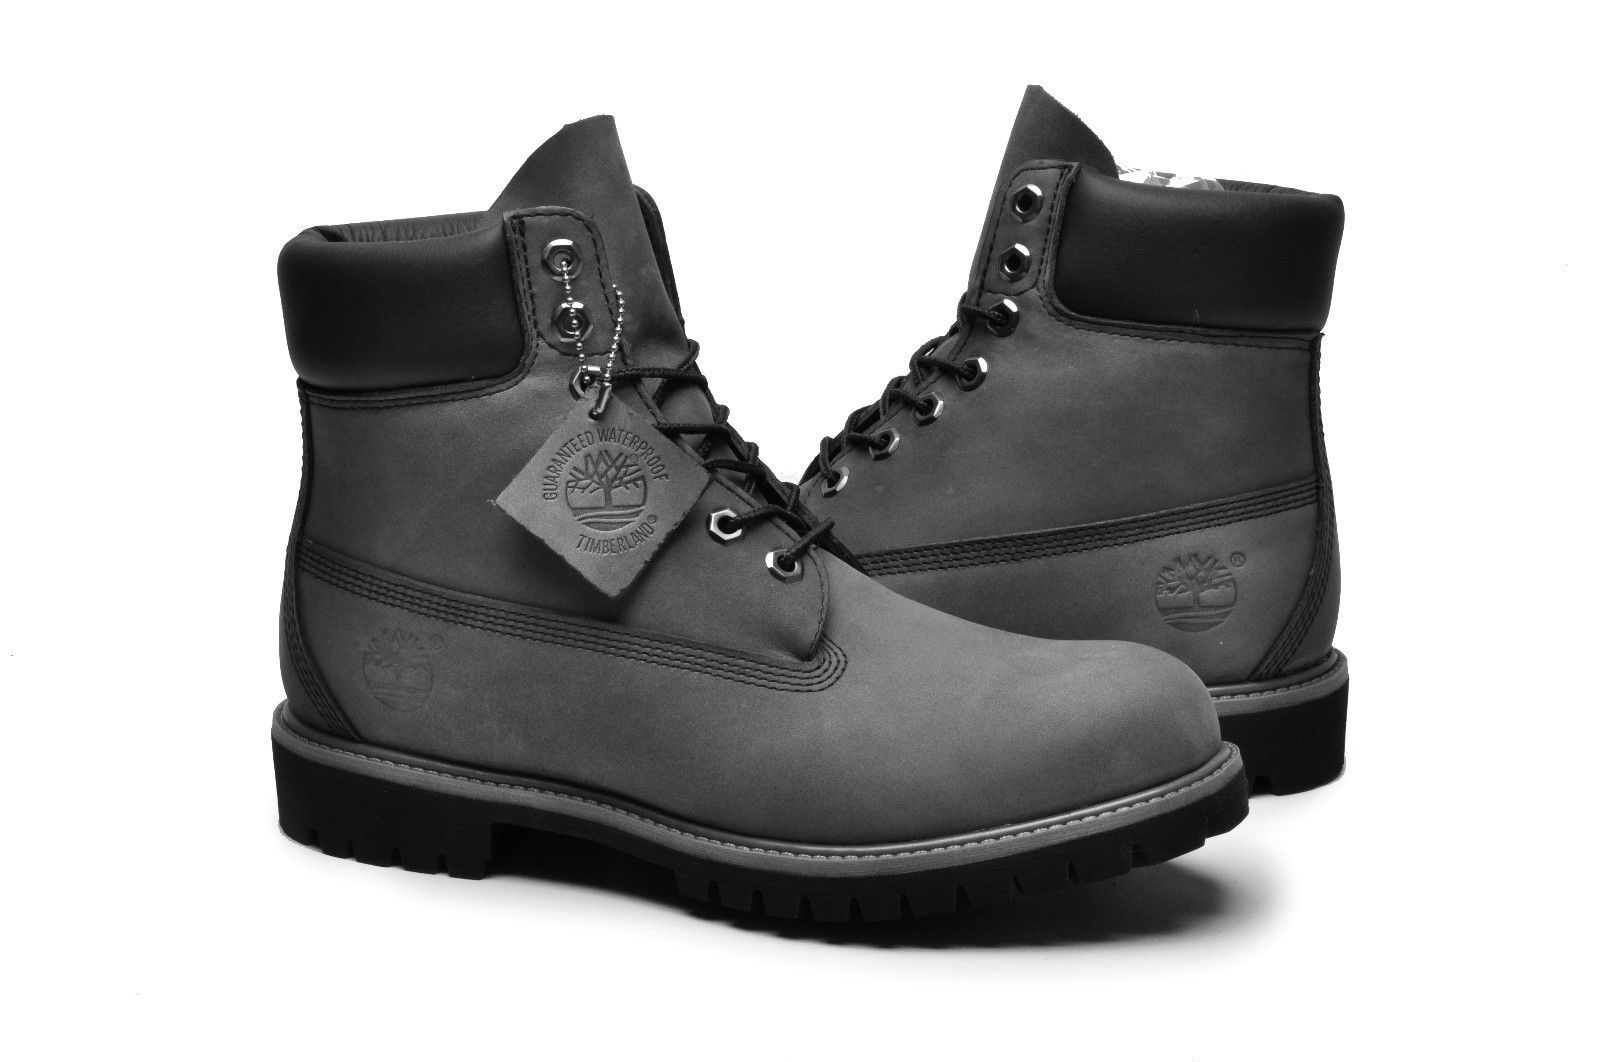 78c2d9529a17 Timberland Men s Boot 6 Inch Premium 6609A Grey Black suede